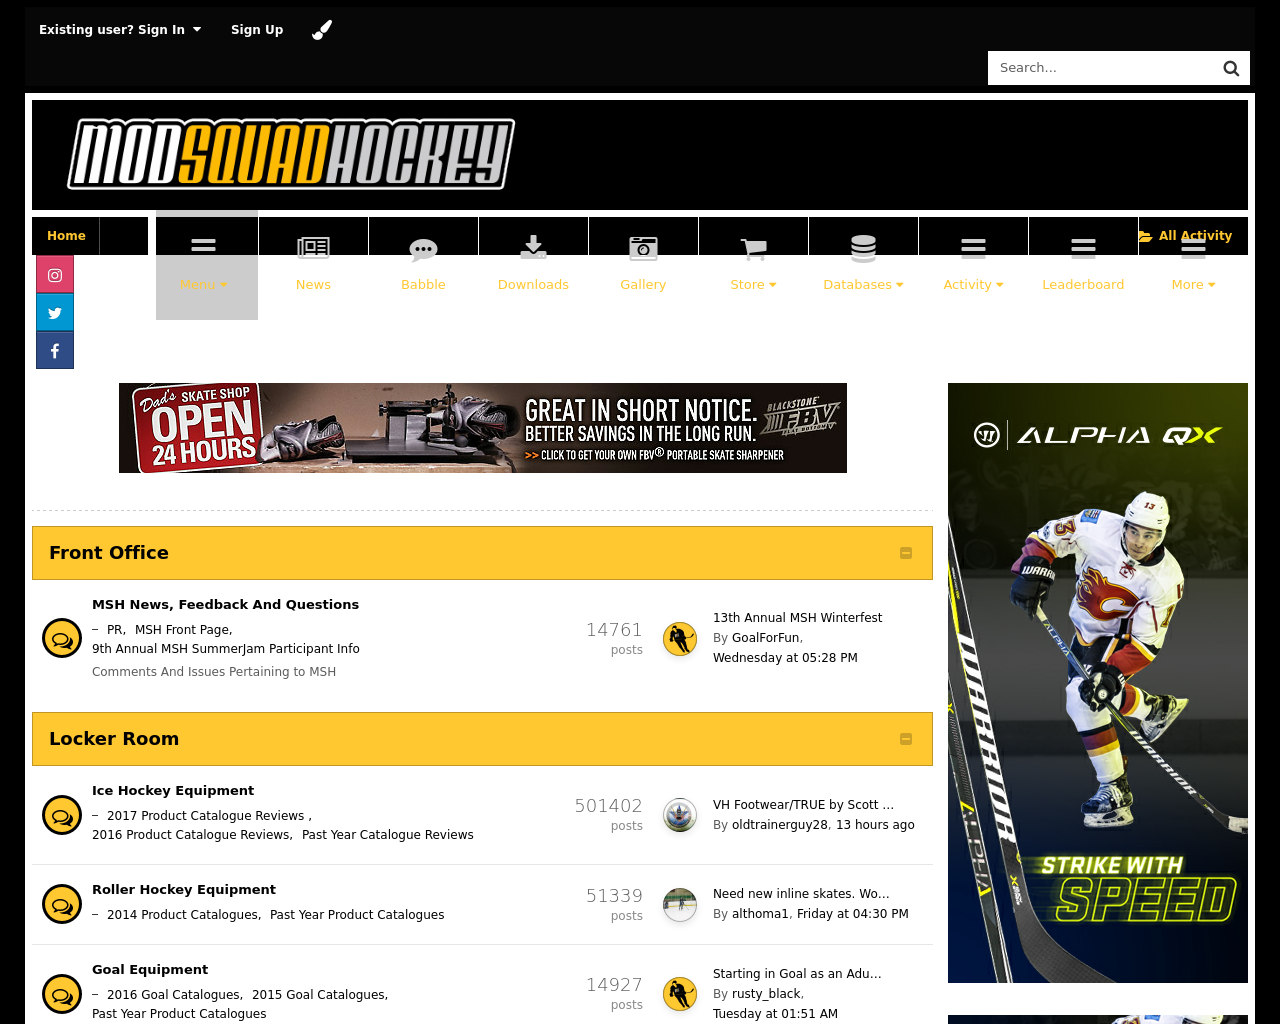 ModSquadHockey-Advertising-Reviews-Pricing